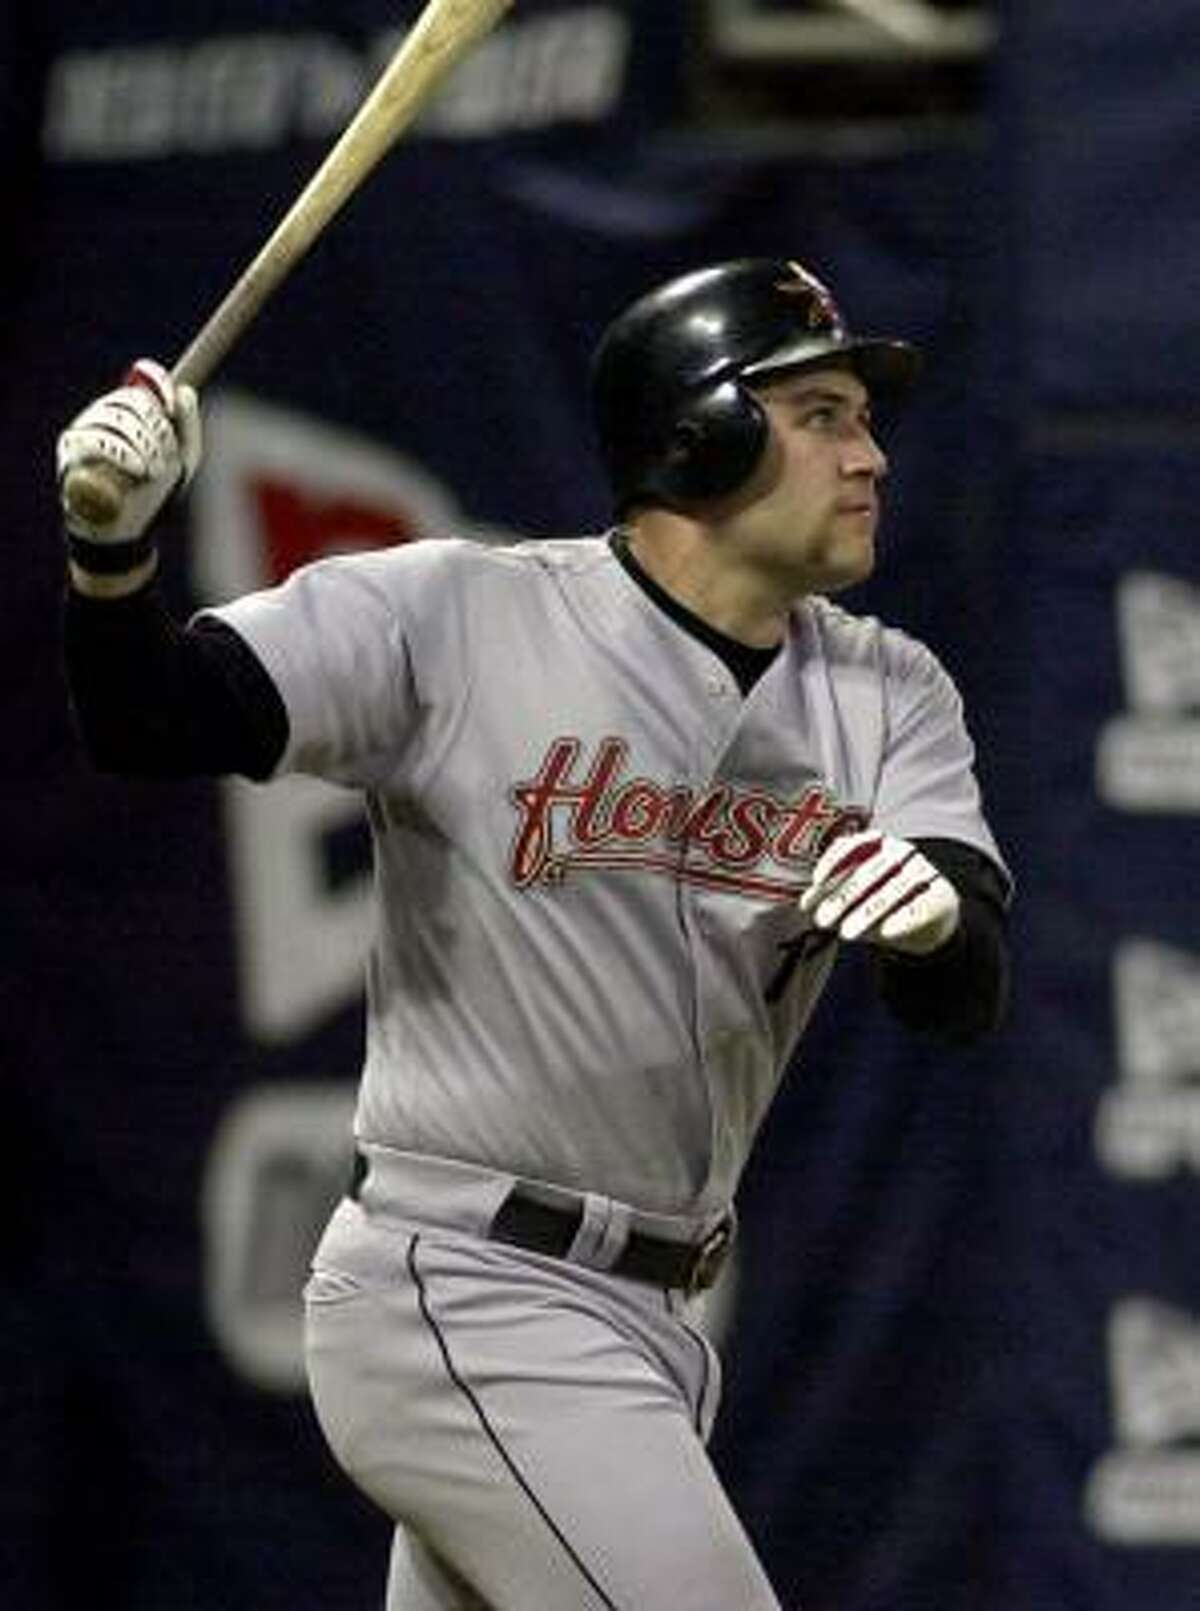 July 20, 1999 In his 11th at-bat and 12th plate appearance, Berkman breaks through for his first hit, a single off Bartolo Colon of the Indians. He hits his first career home run (and later his second) in a road win over the Padres on July 31, 1999.